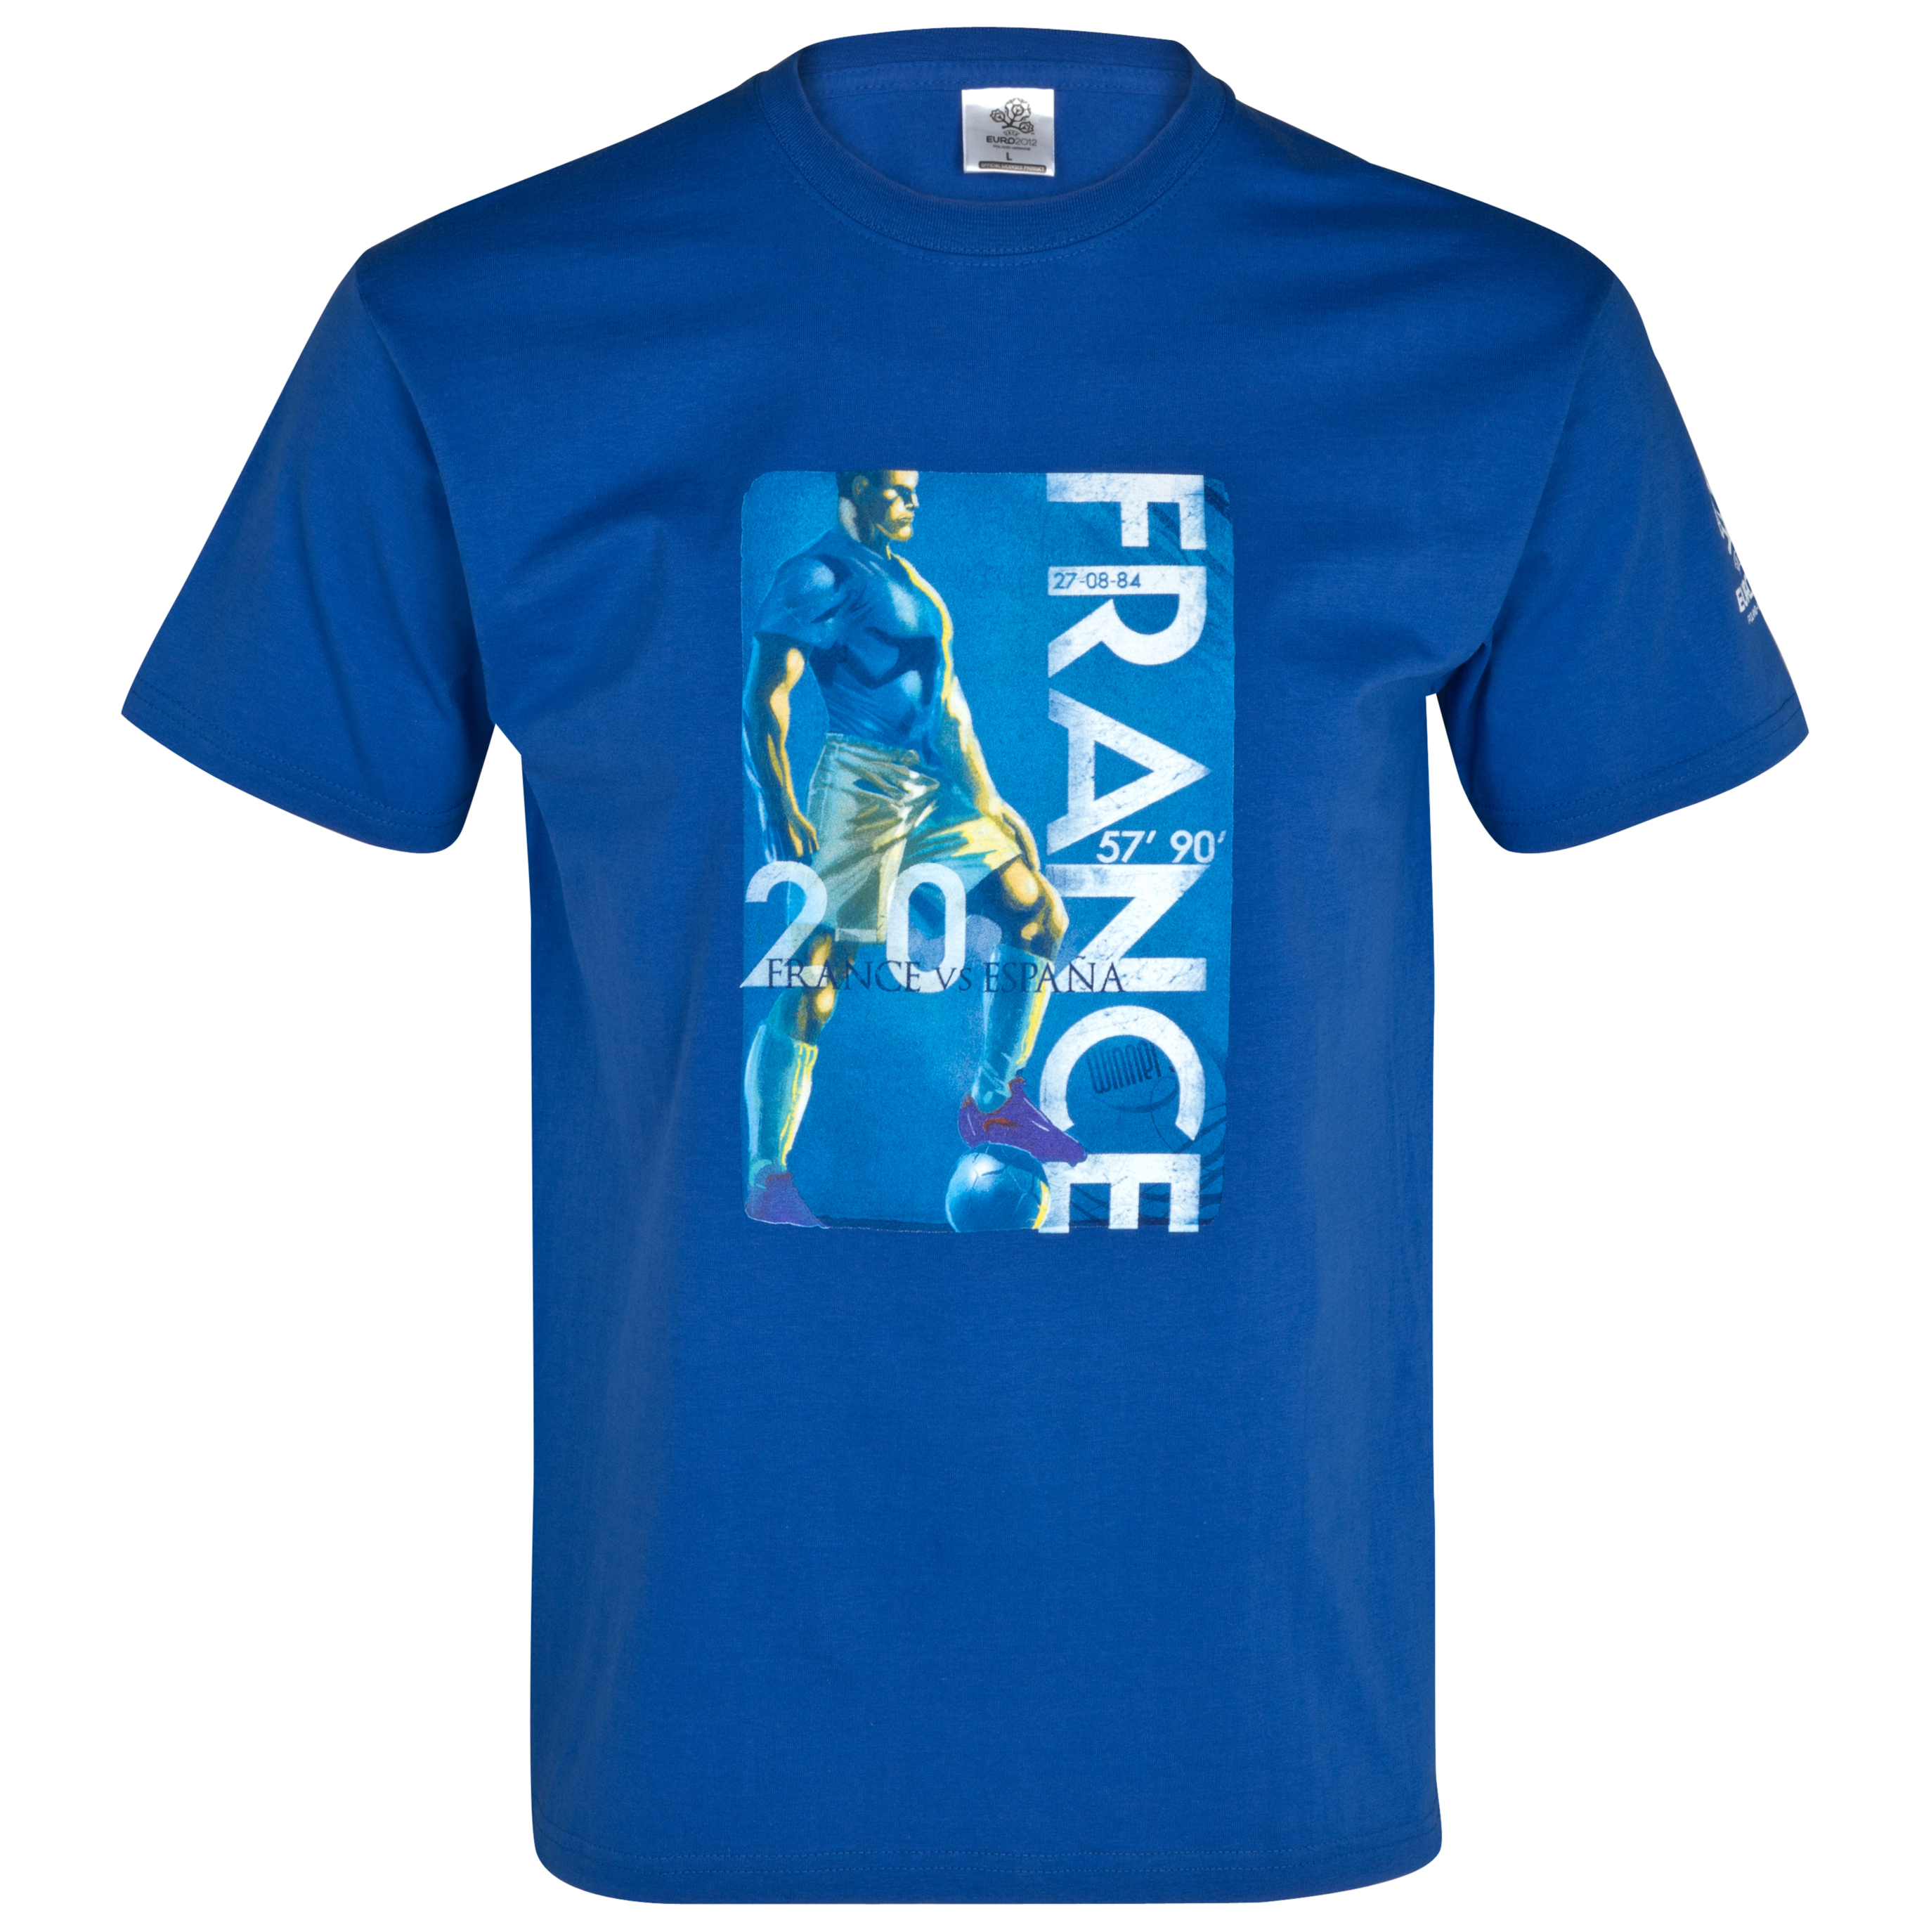 Euro 2012 France Winners 1984 T-Shirt - Blue